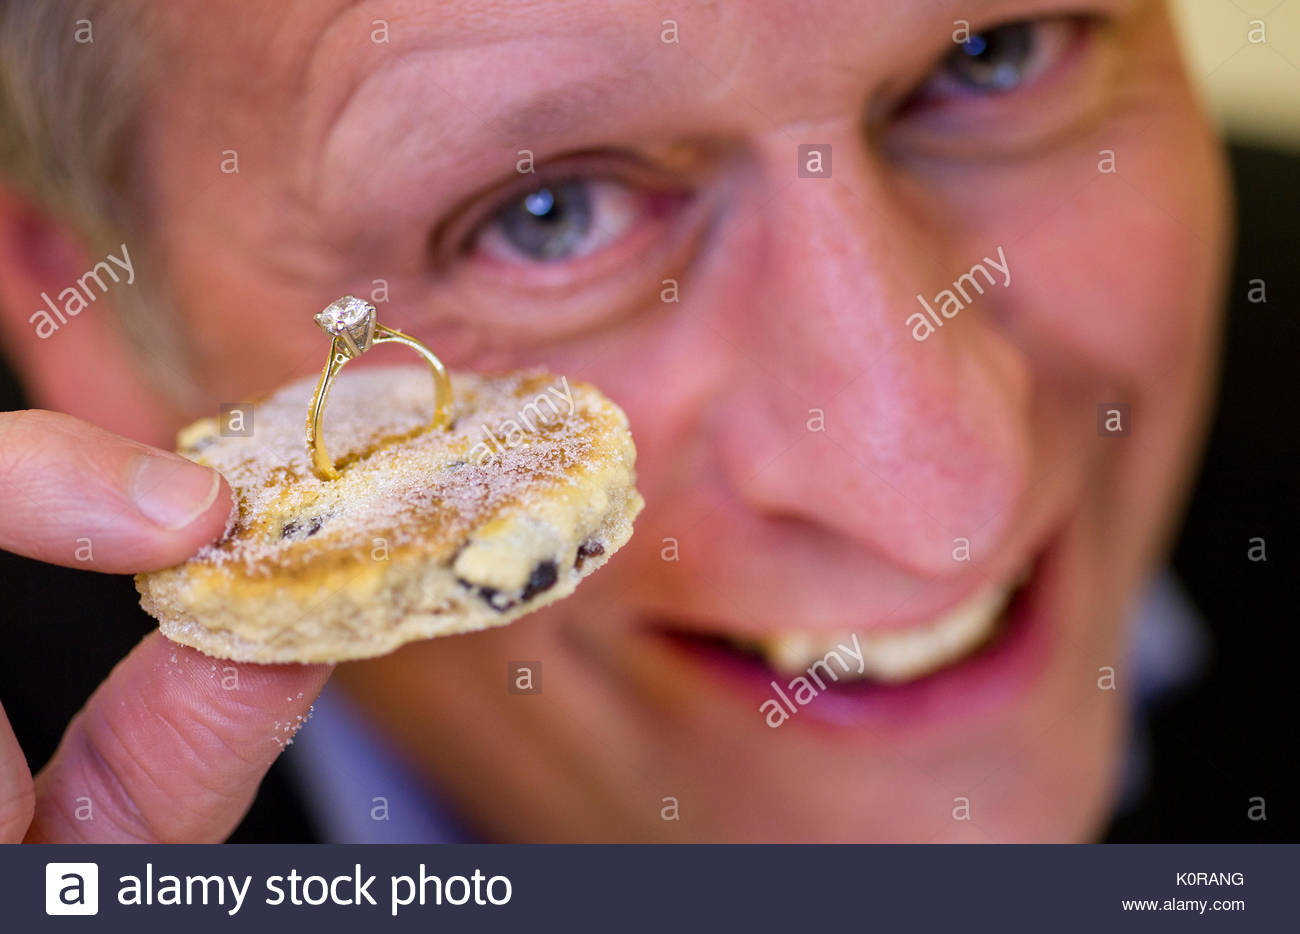 Clive Ranger with the Welsh Cake. Welsh gold, sparkling diamonds and ...